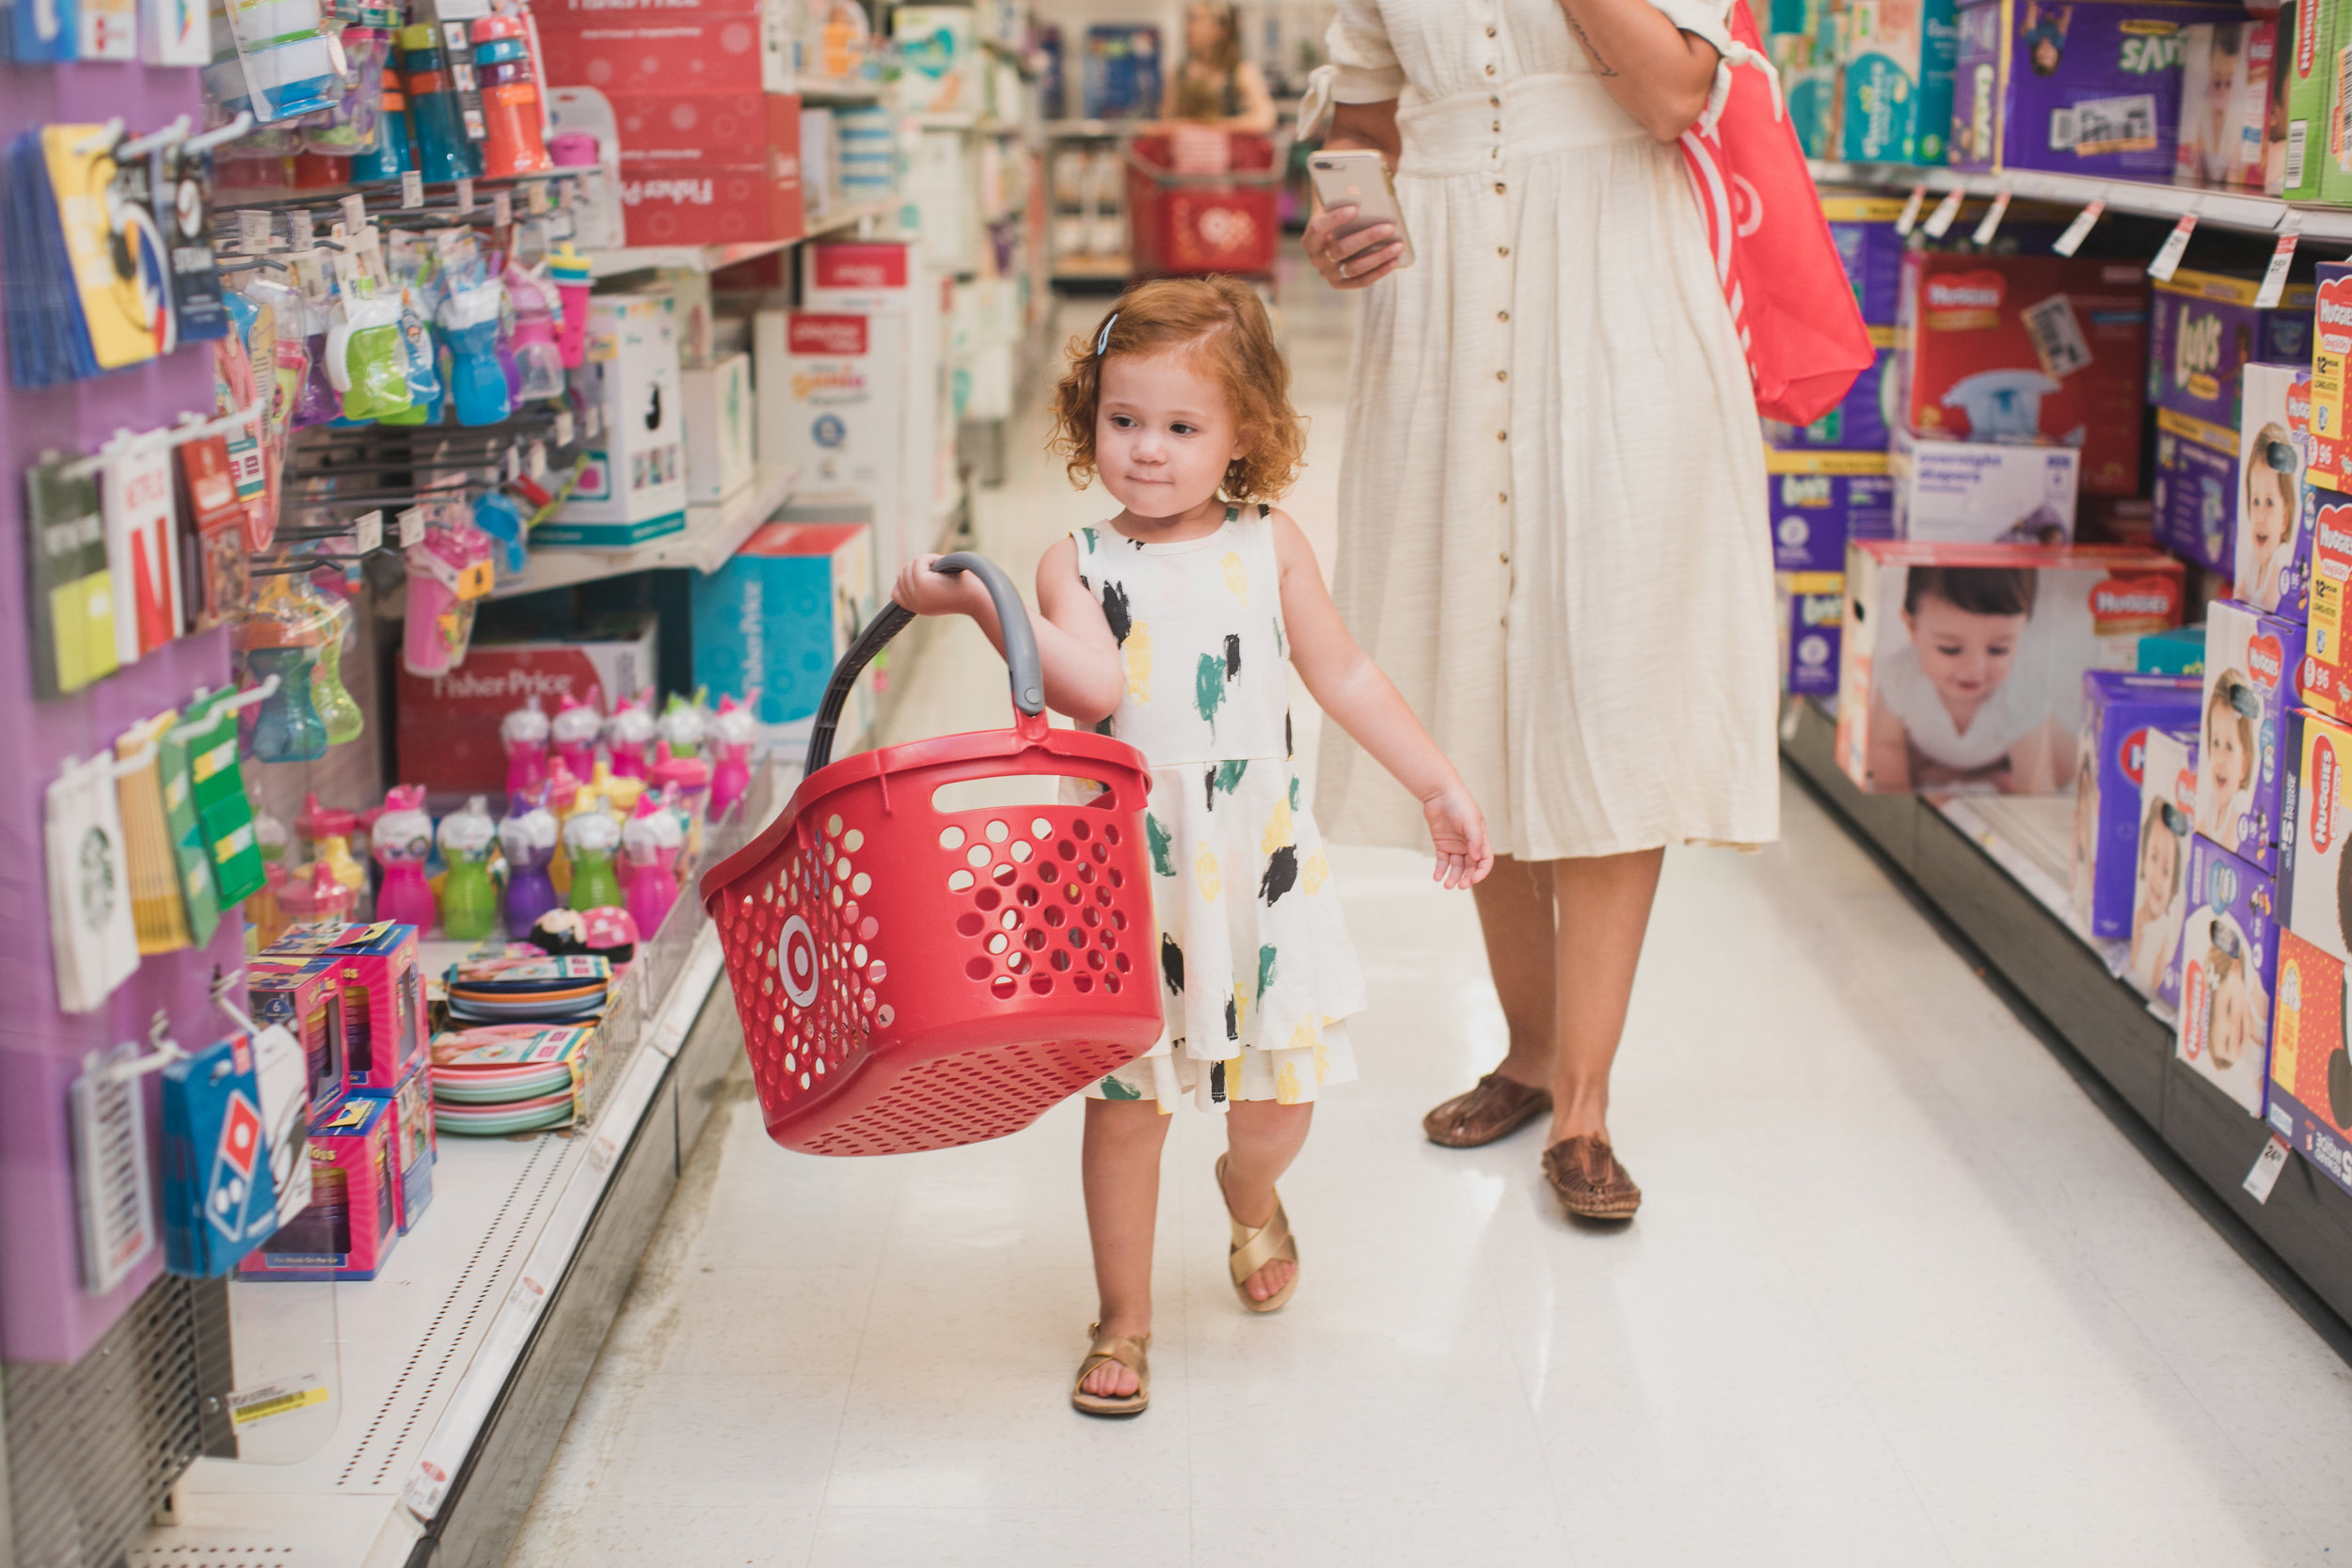 Baby_Boy_Bakery_Target_Lily_Ro_Photography-2392.jpg